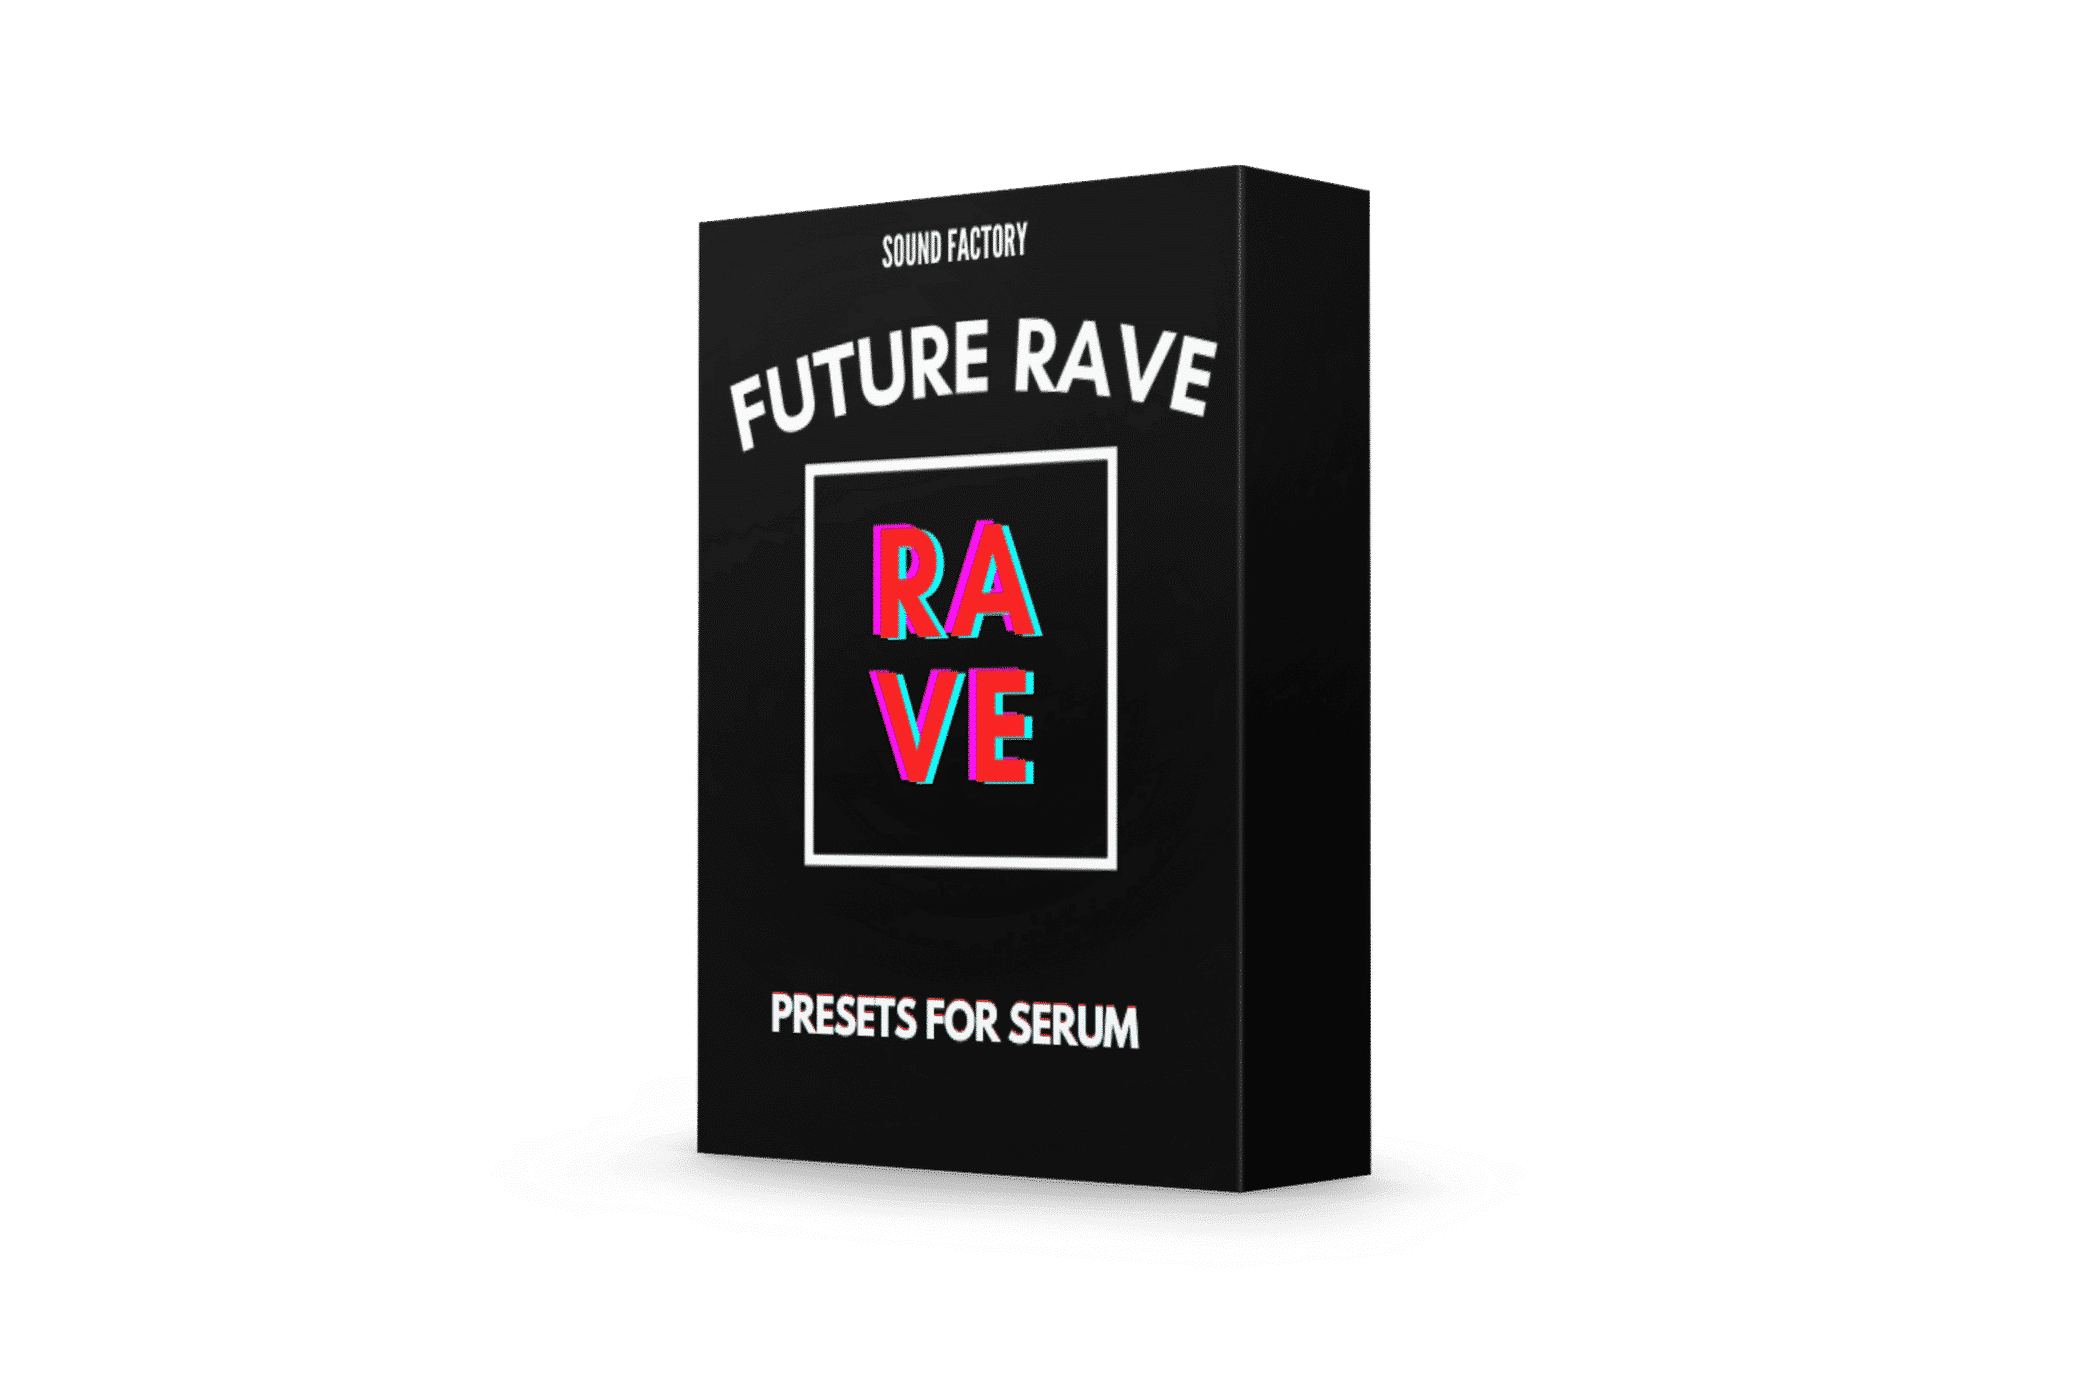 Sound Factory - Future Rave for Serum